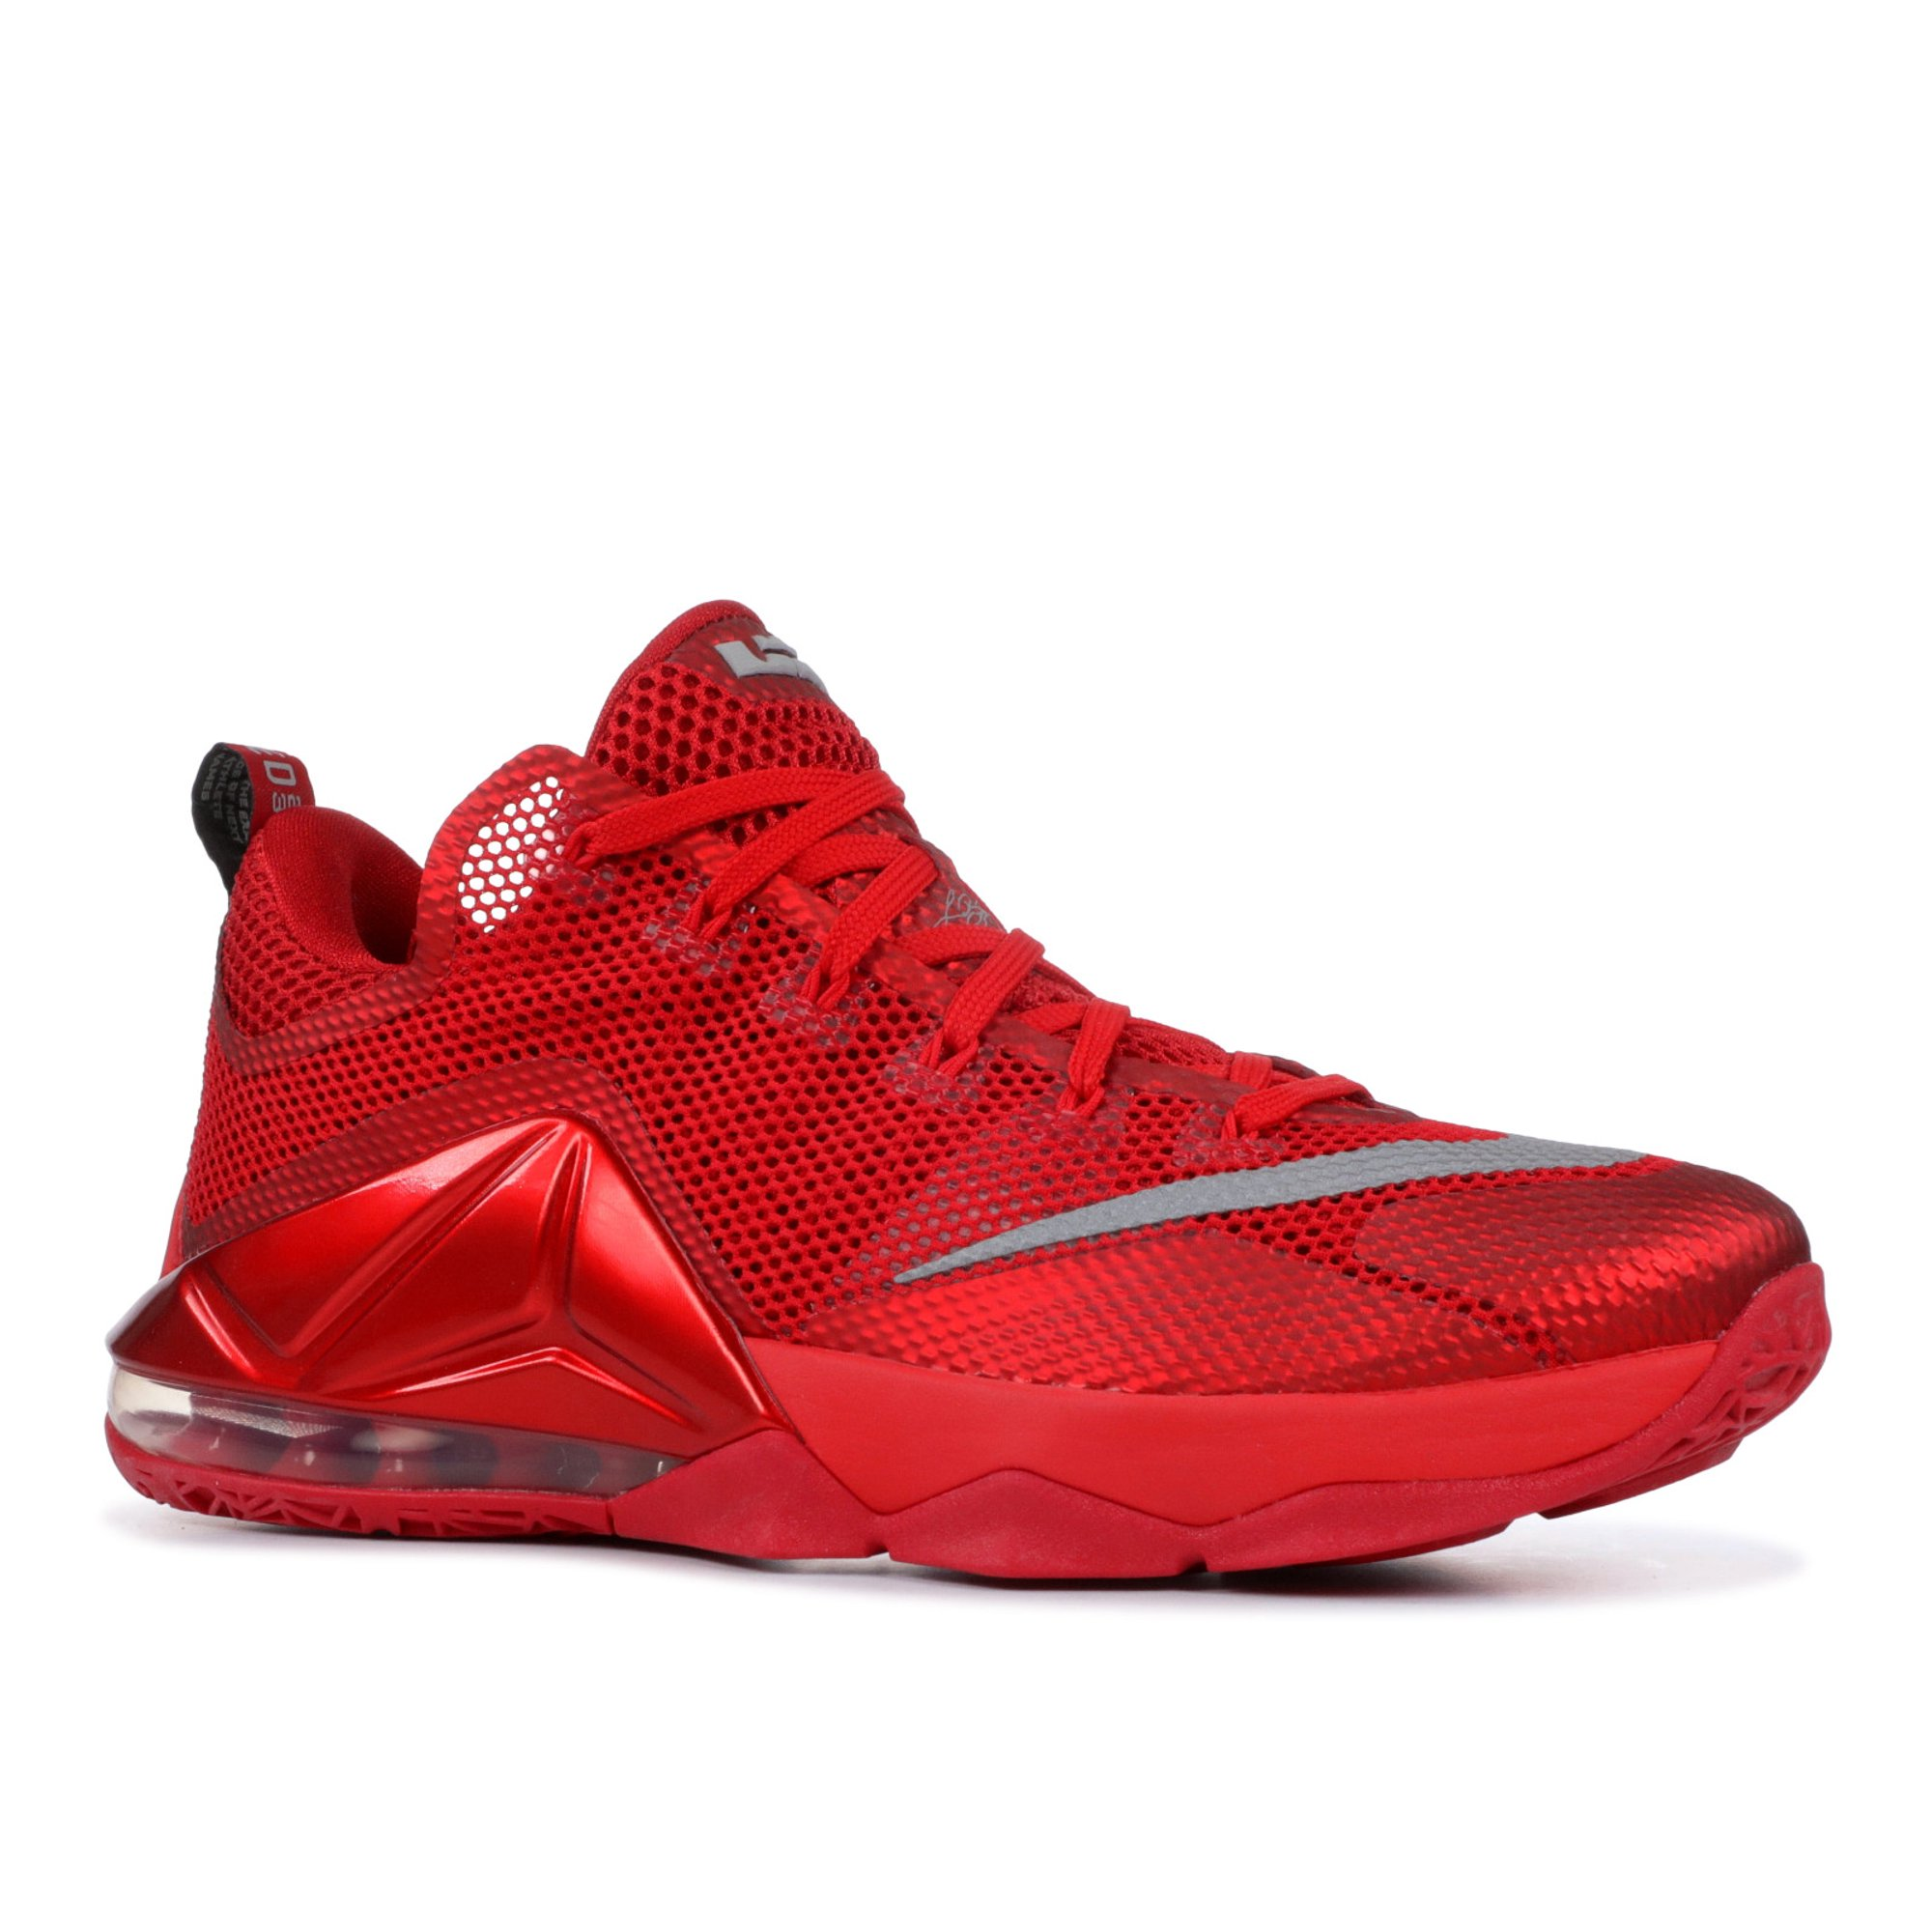 huge selection of 1d83b 7f558 Nike - Men - Nike Lebron 12 Low 'All Over Red' - 724557-616 ...